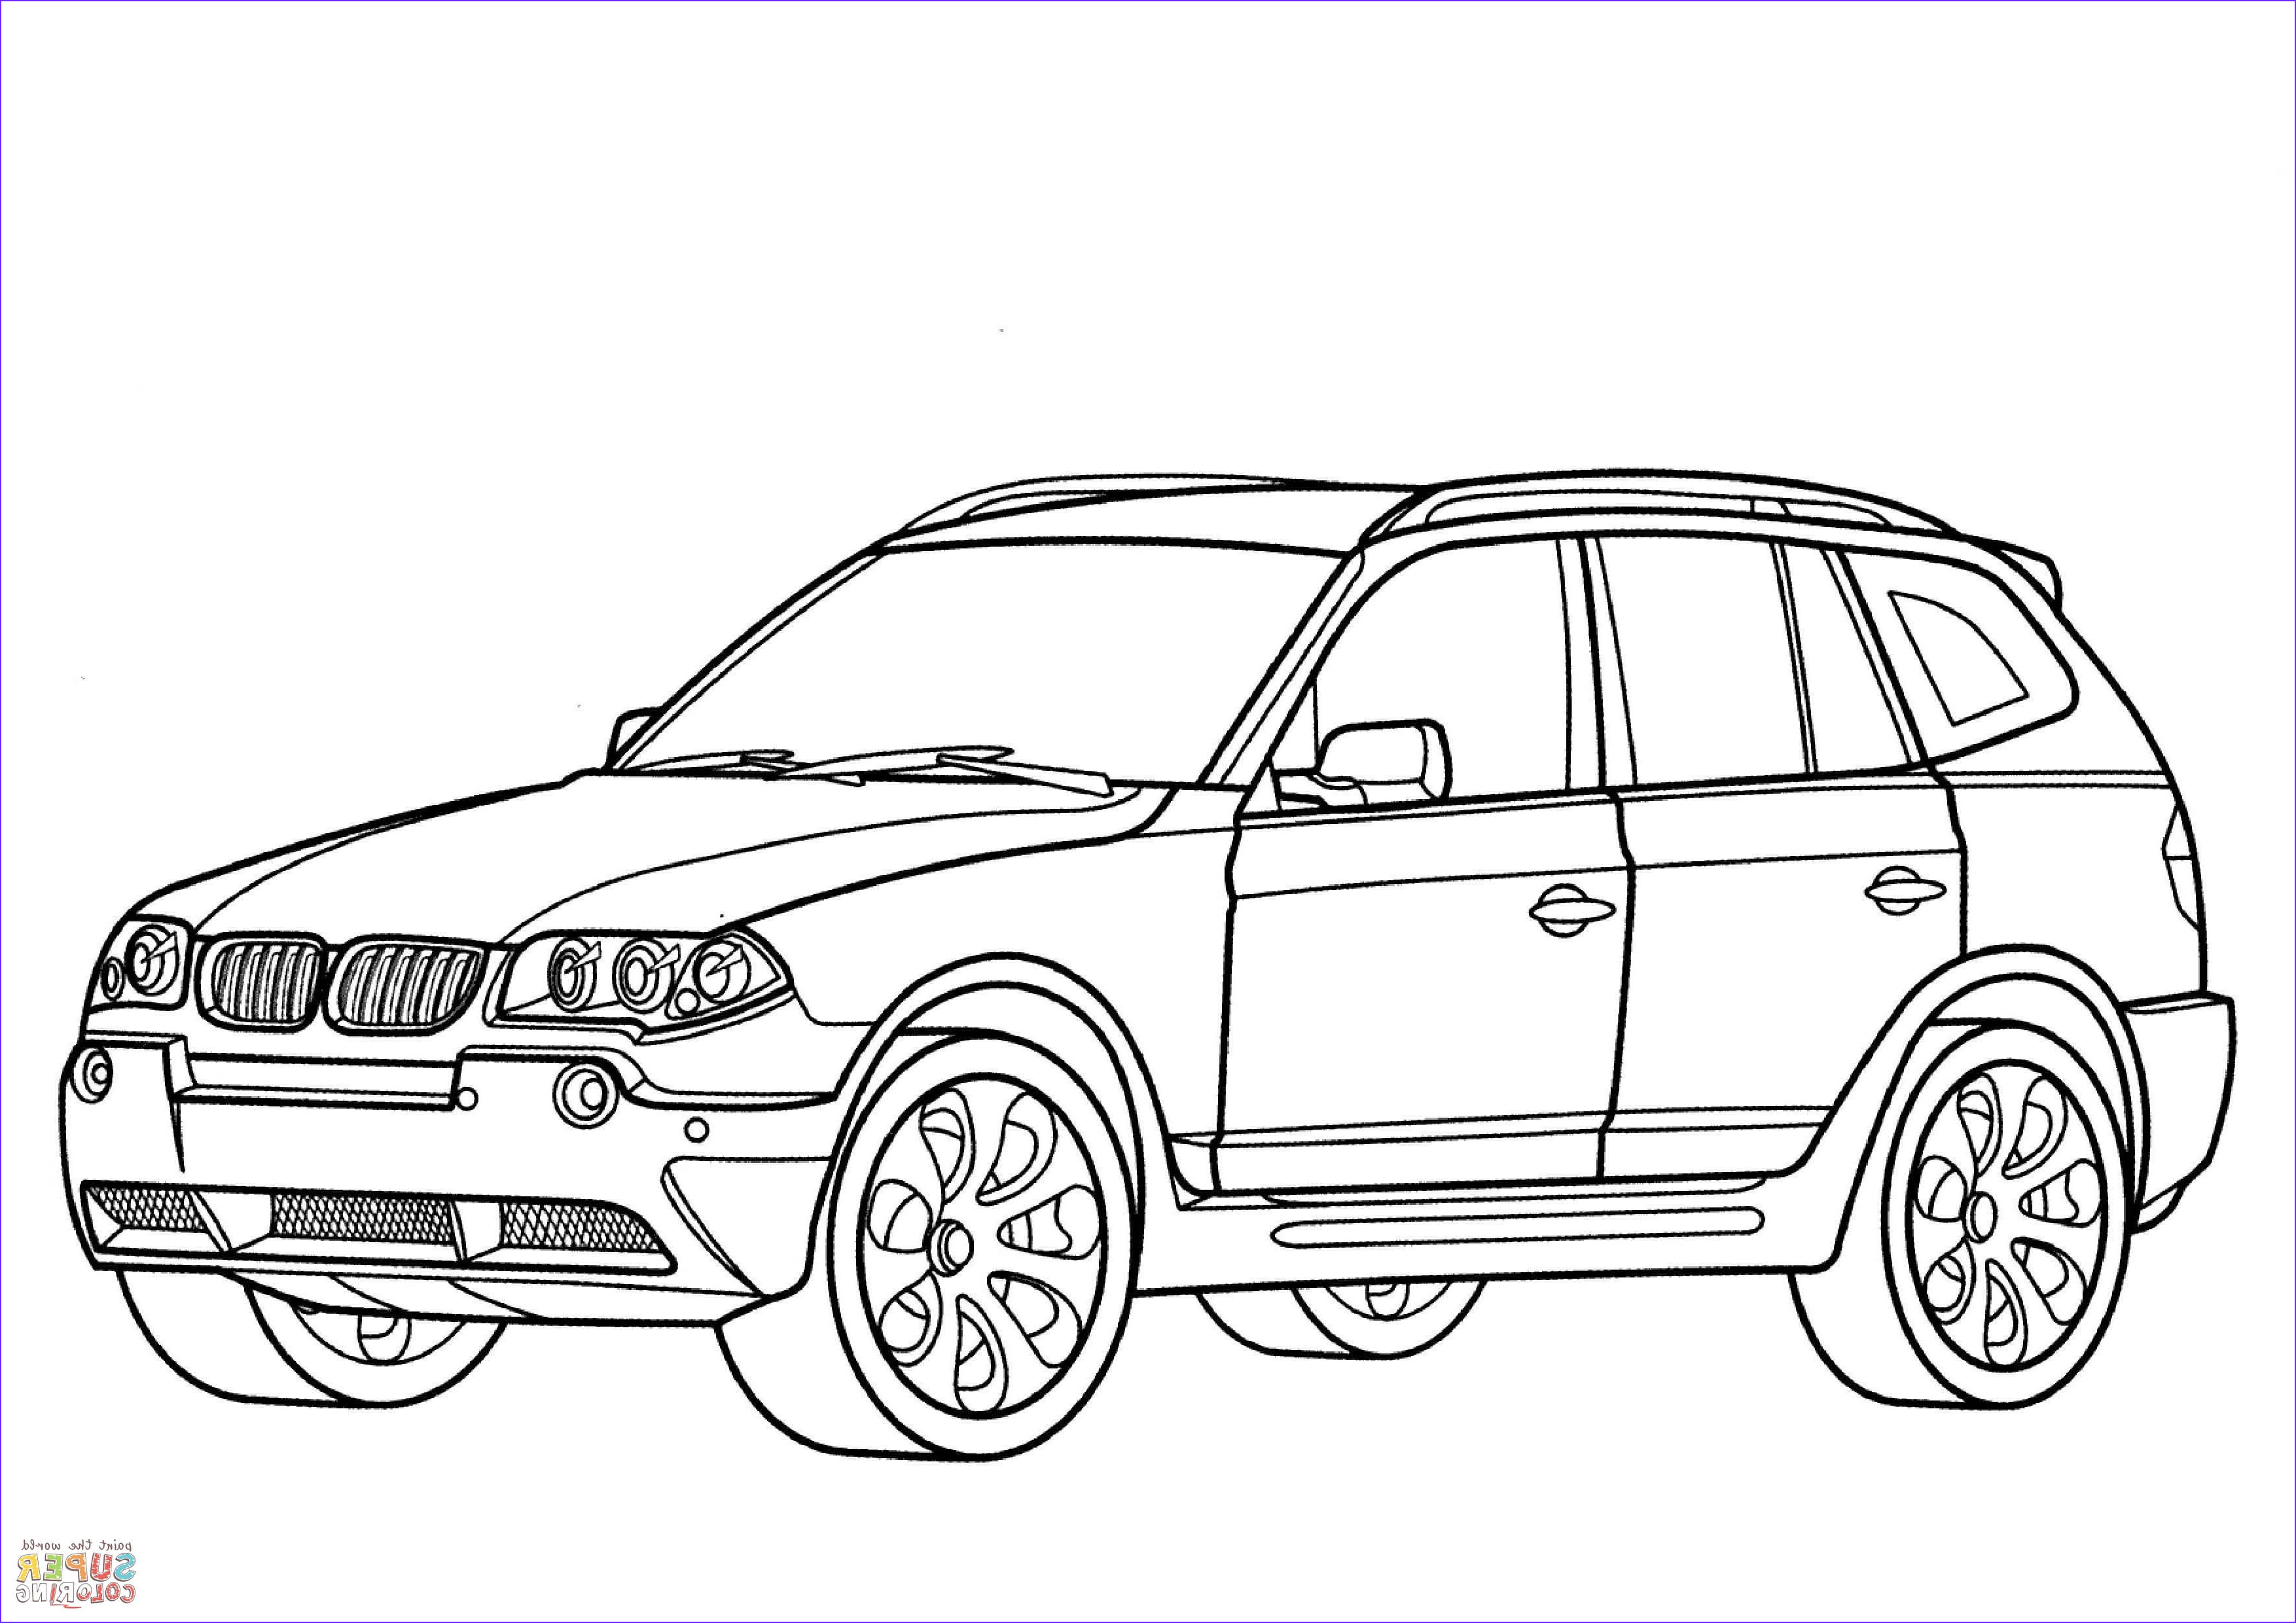 Bmw Coloring Pages Inspirational Image Bmw X3 Coloring Page